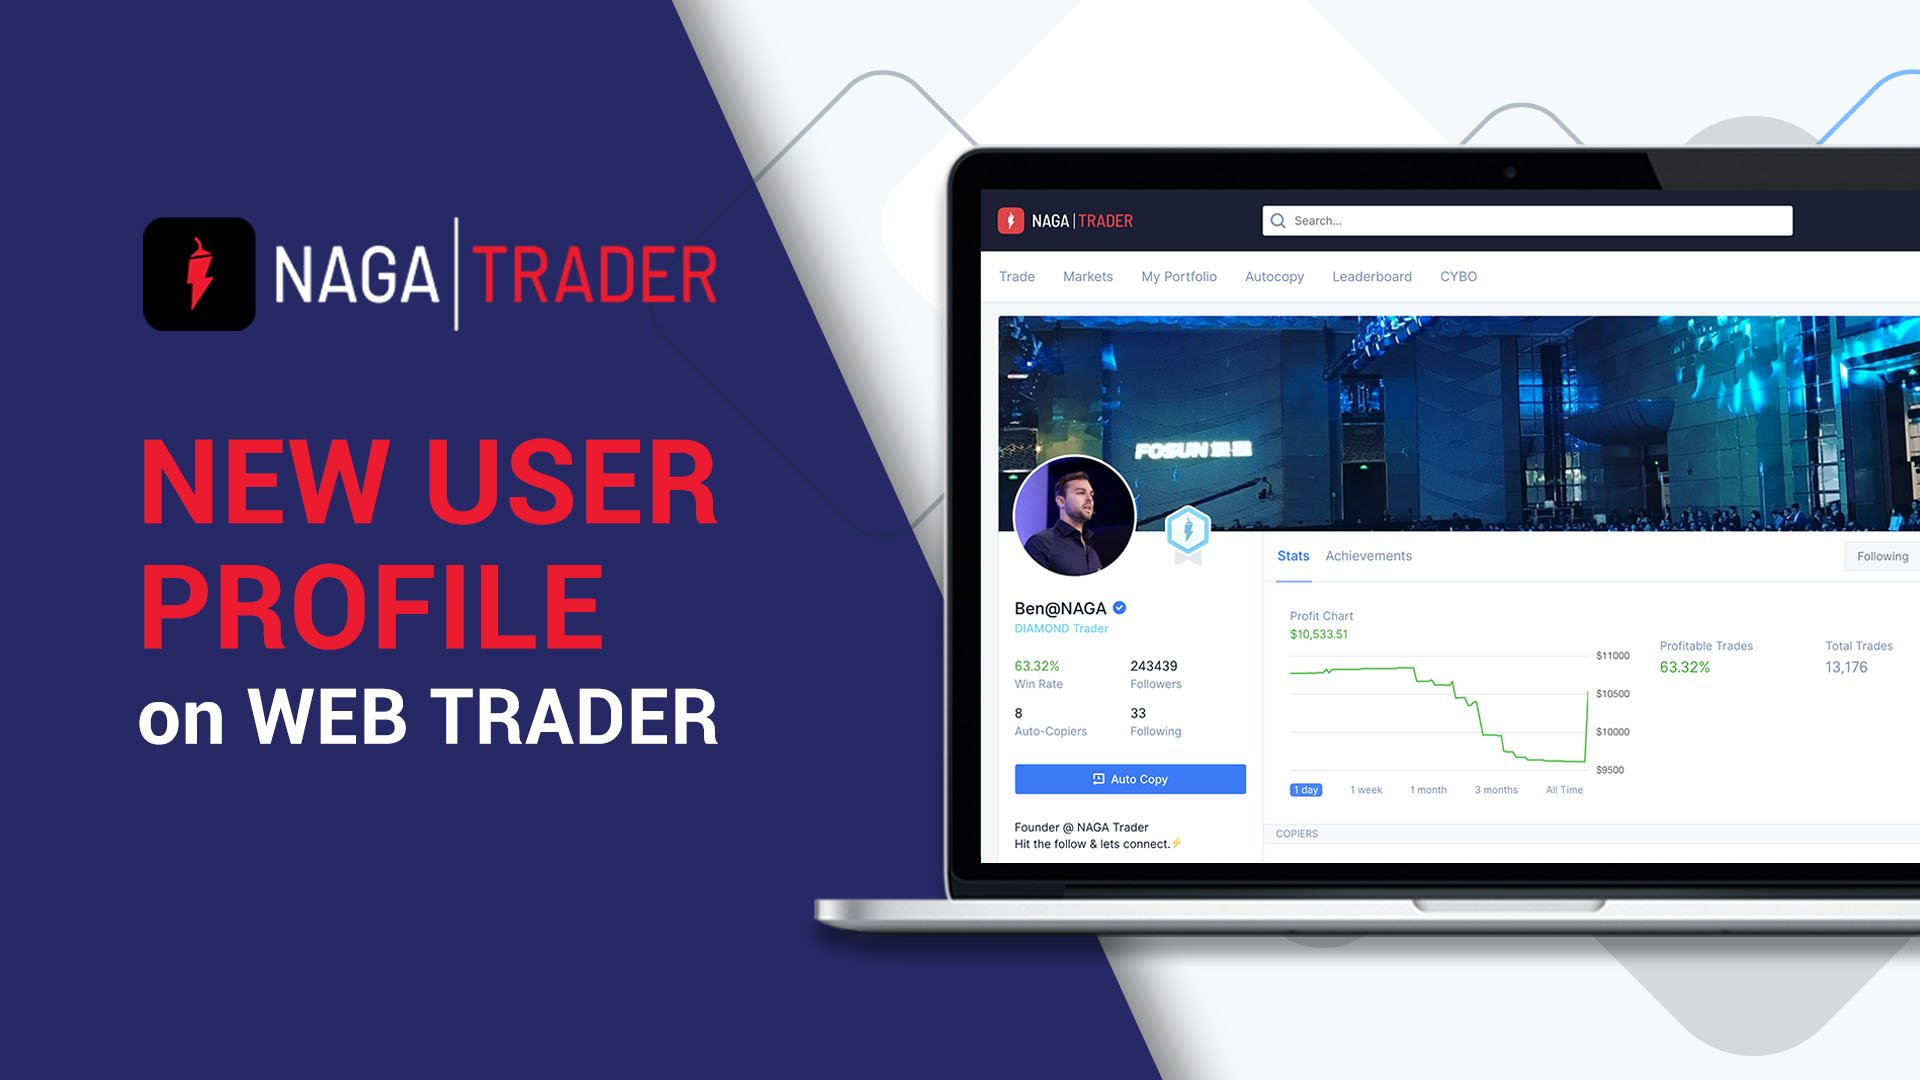 NAGA TRADER WebApp Deploys a New Update